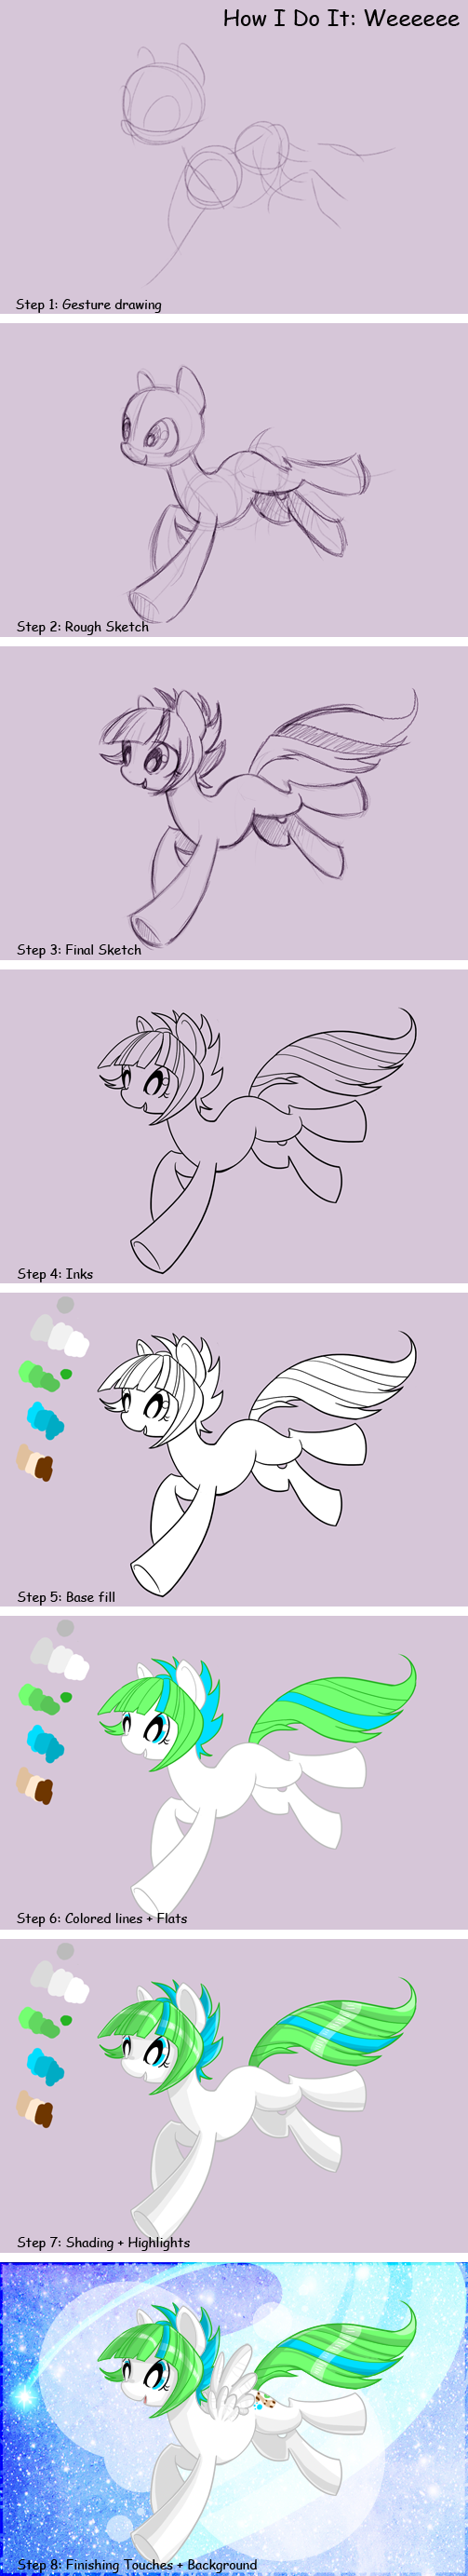 How I do it: Weeee by EllisArts